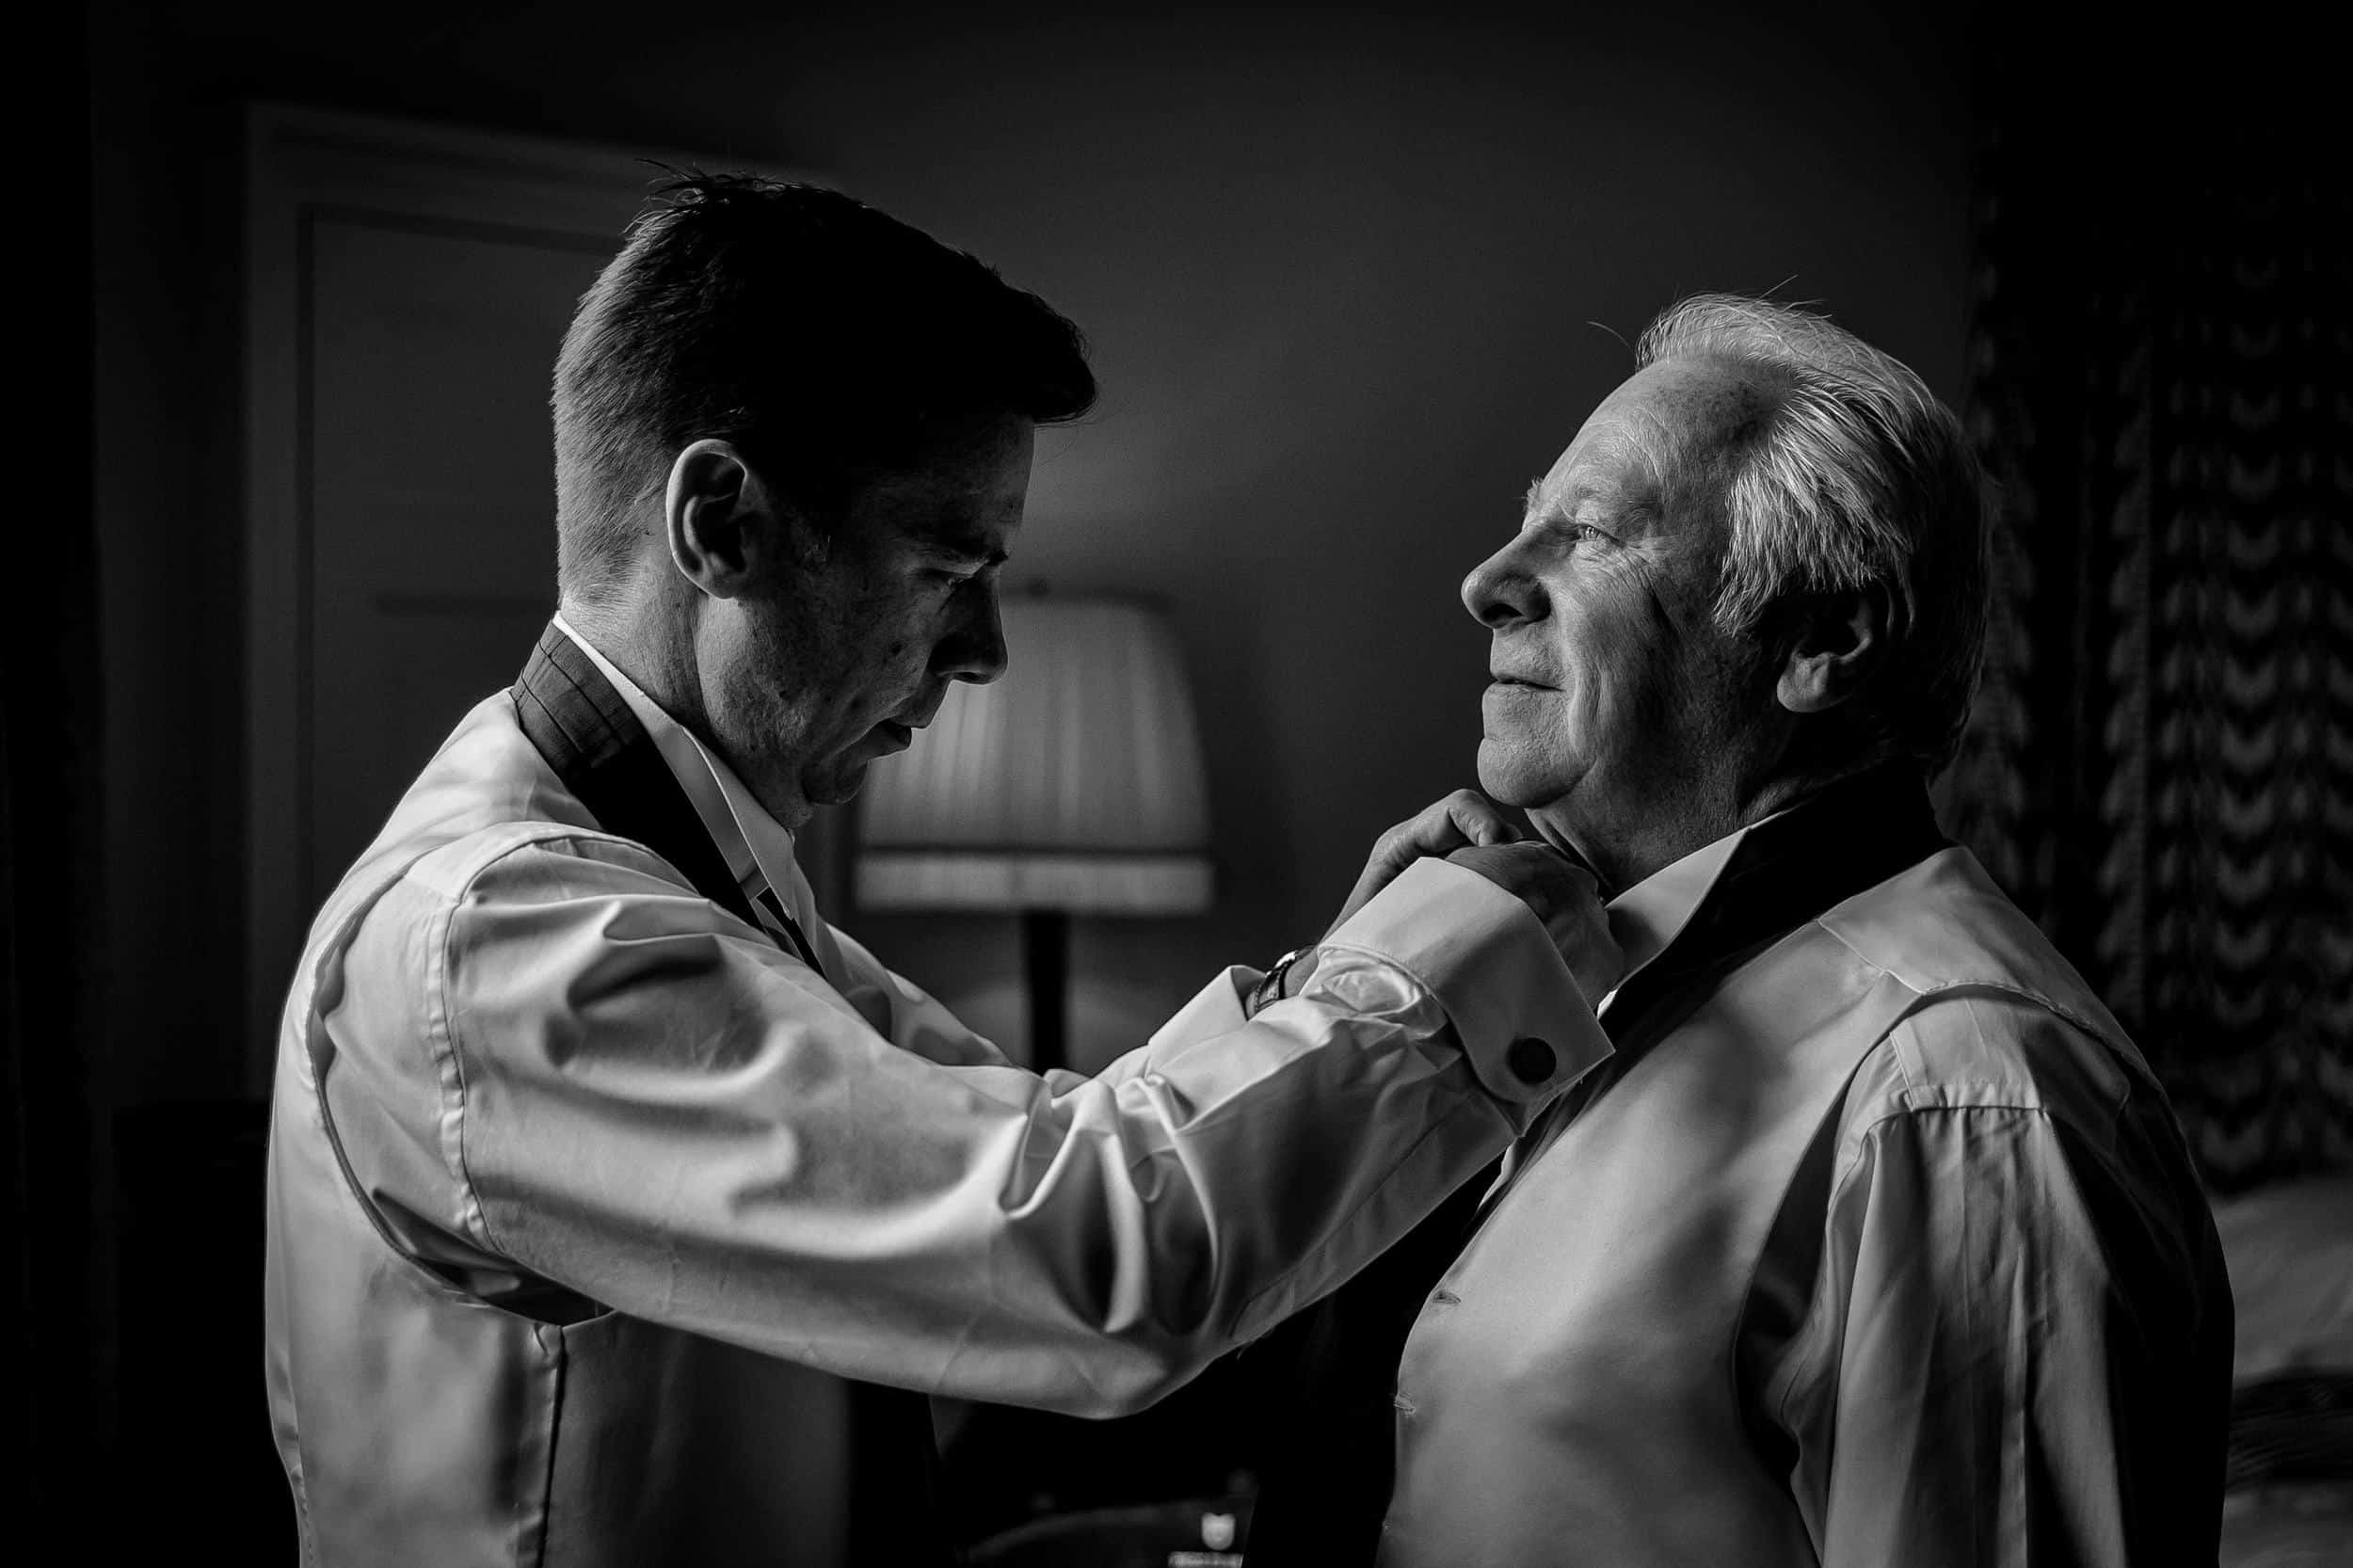 father of the groom having his tie adjusted photographed by steven brooks wedding photographer